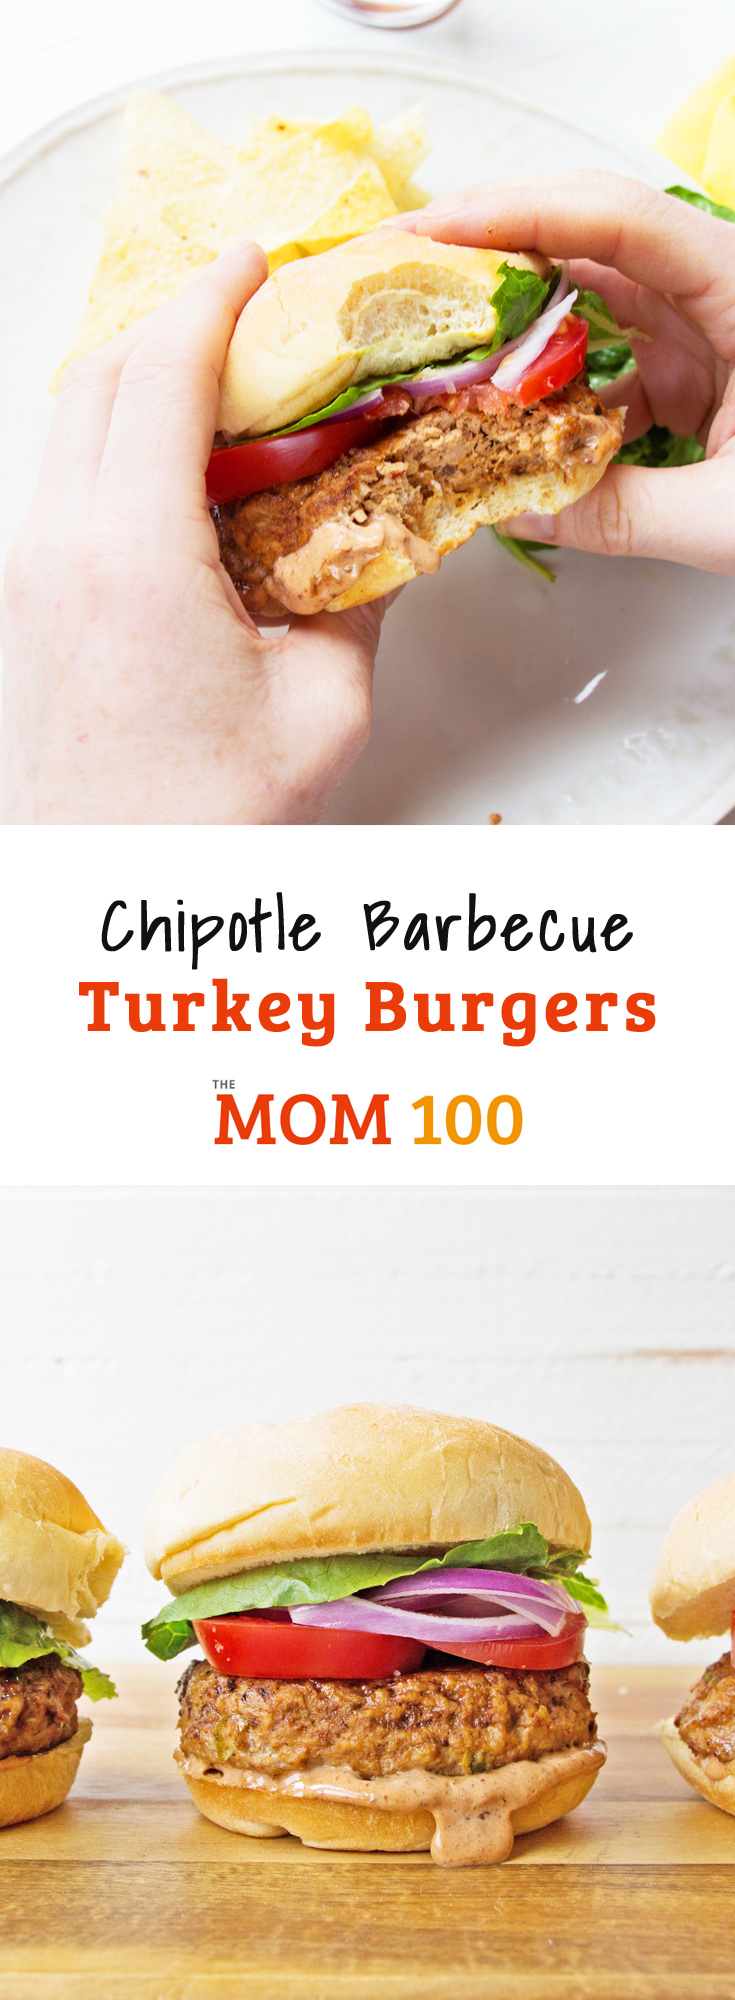 This Chipotle Barbecue Turkey Burger recipe results in burgers that are so juicy and flavorful, you might just make converts out of the turkey-burger-skittish.